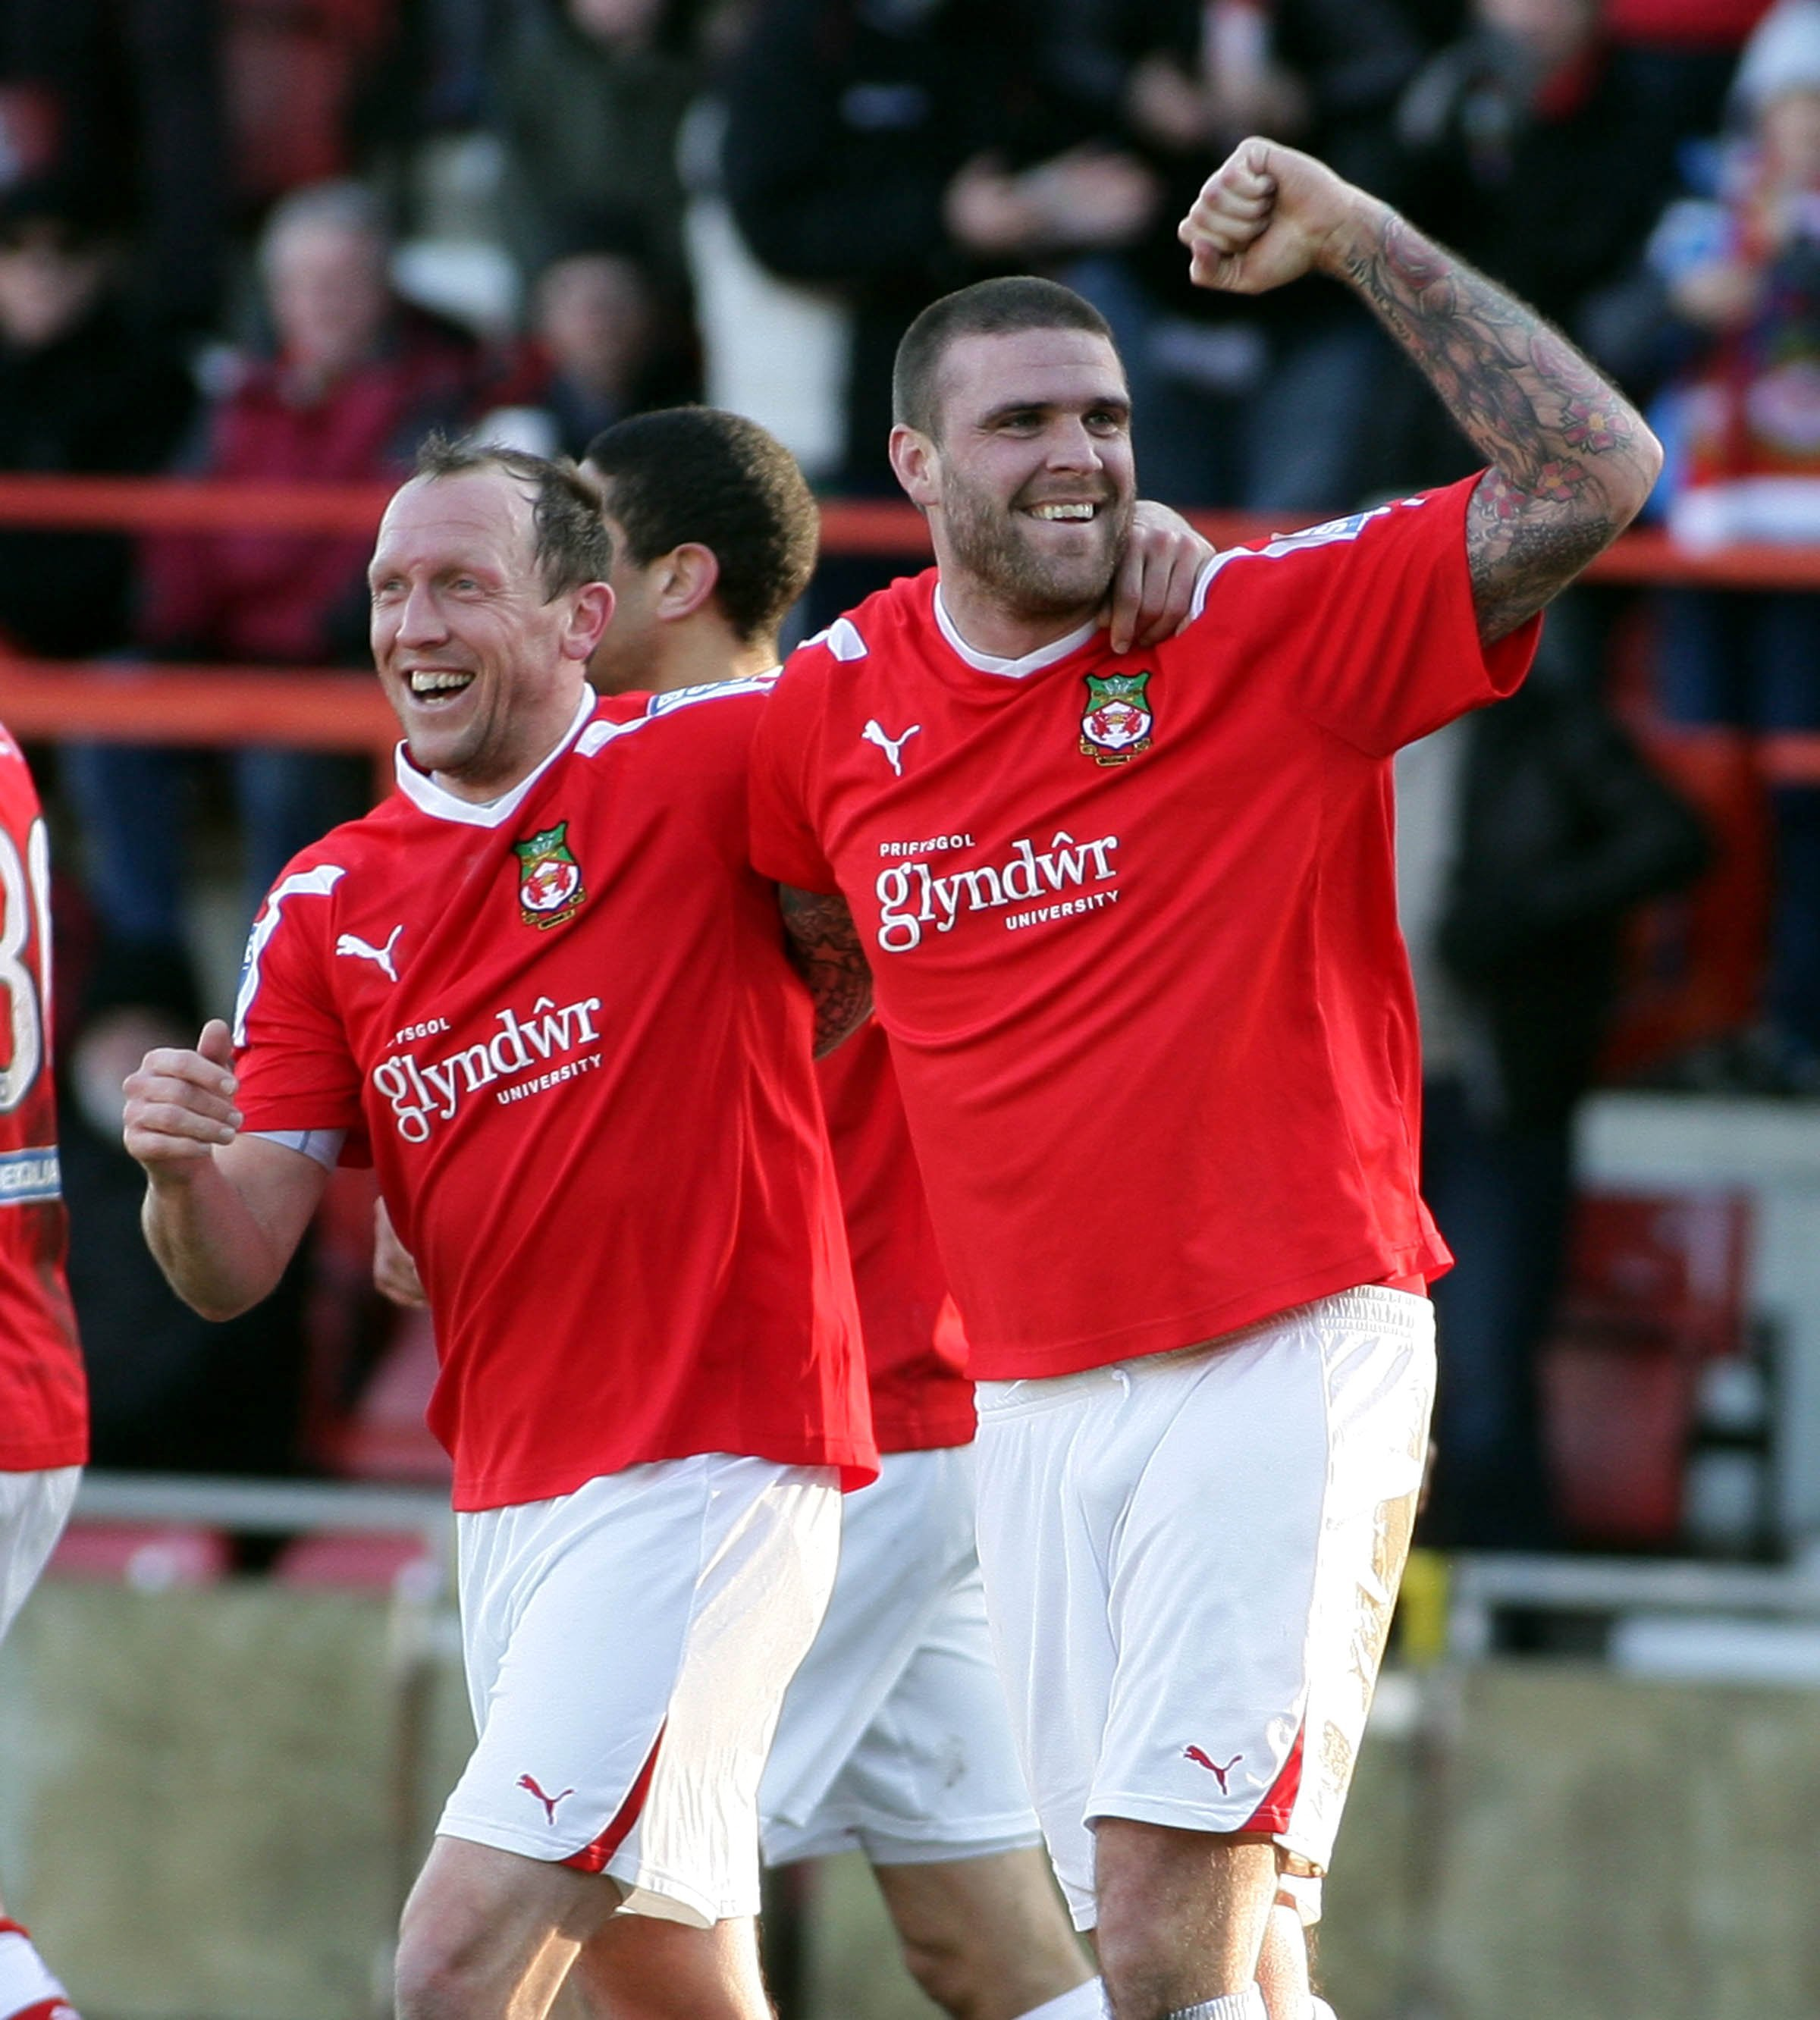 Wrexham v Hayes and Yeading at the Glyndwr Racecourse in the Blues square Conference Andy Morrell celebrates with Mark Creighton scorer